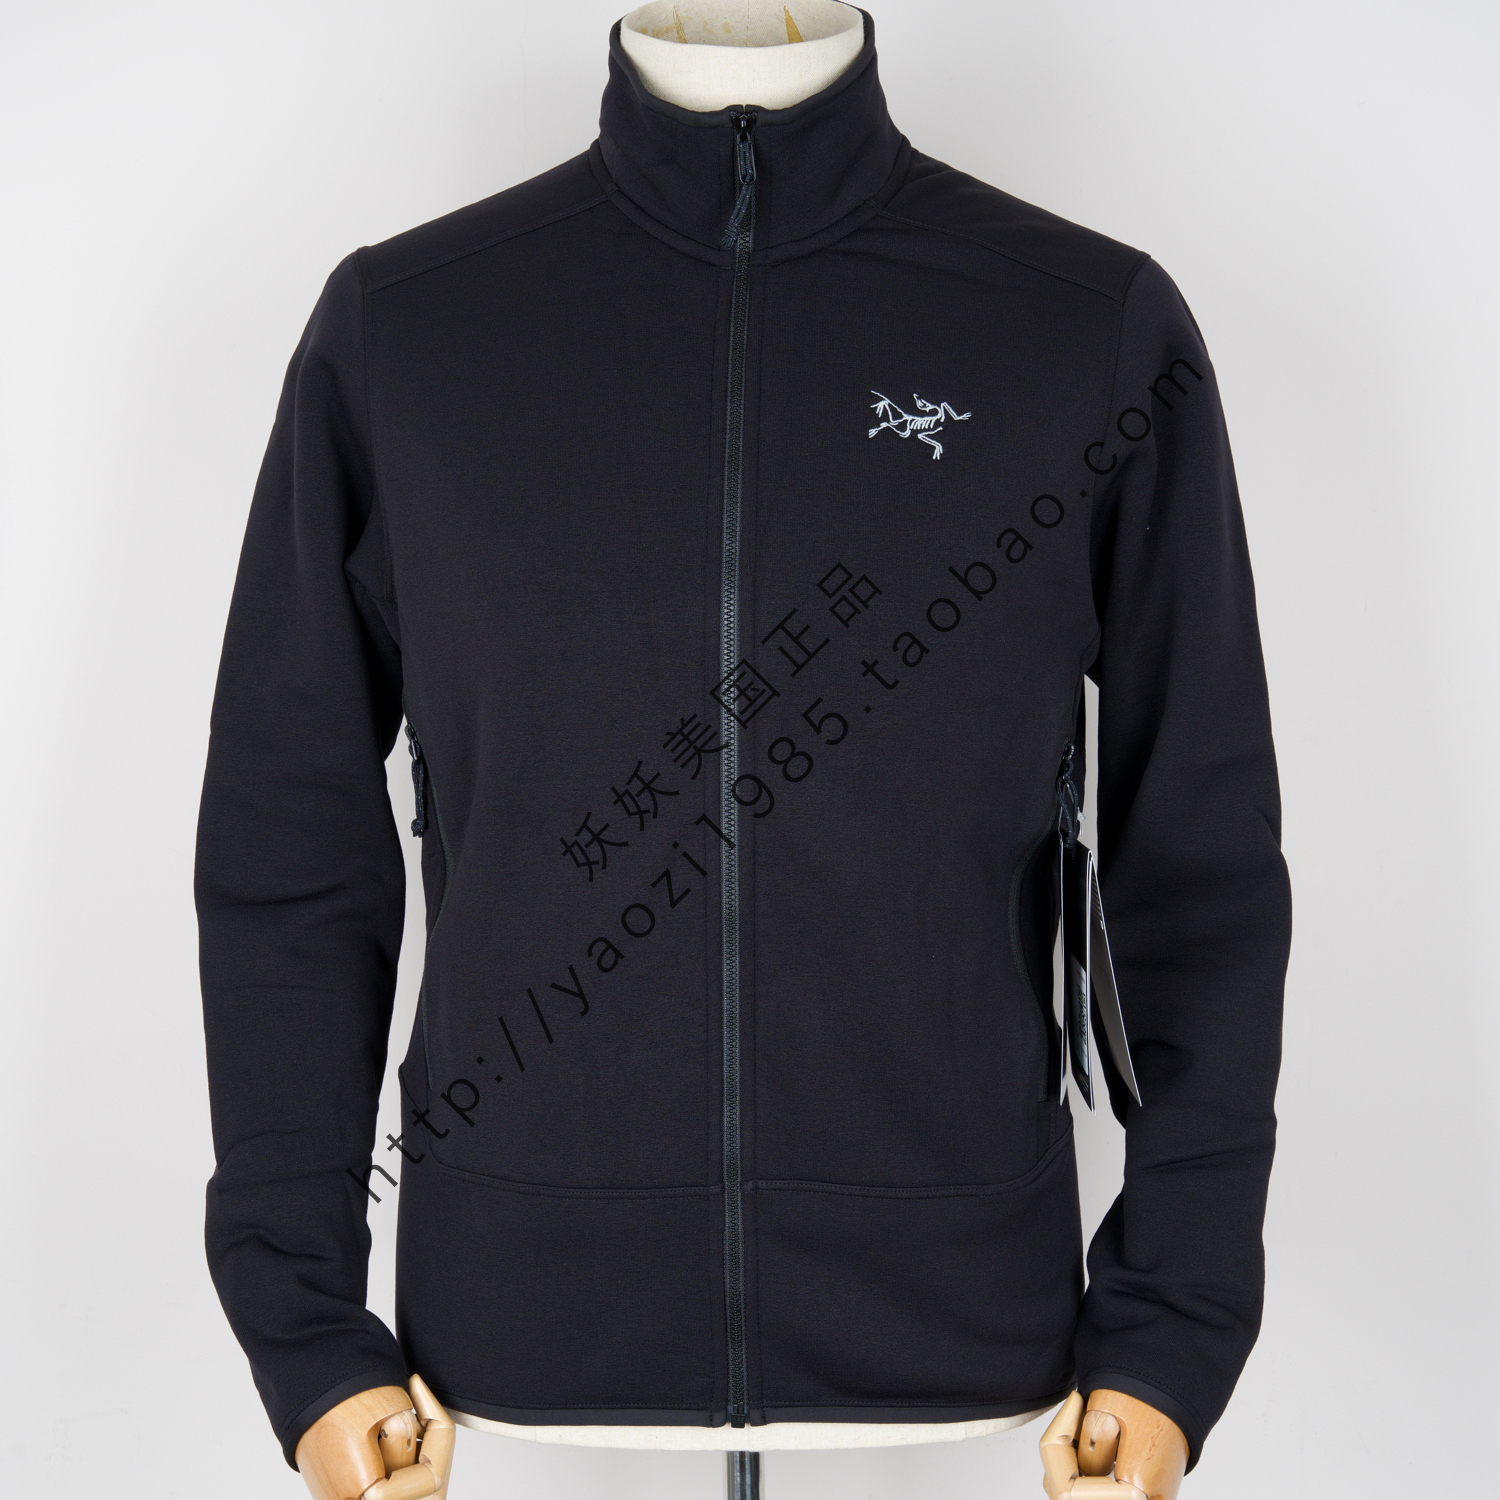 57305e3a7a Spot Archaeopteryx ARCTERYX Kyanite Jacket fleece jacket 18942. Zoom ·  lightbox moreview · lightbox moreview ...